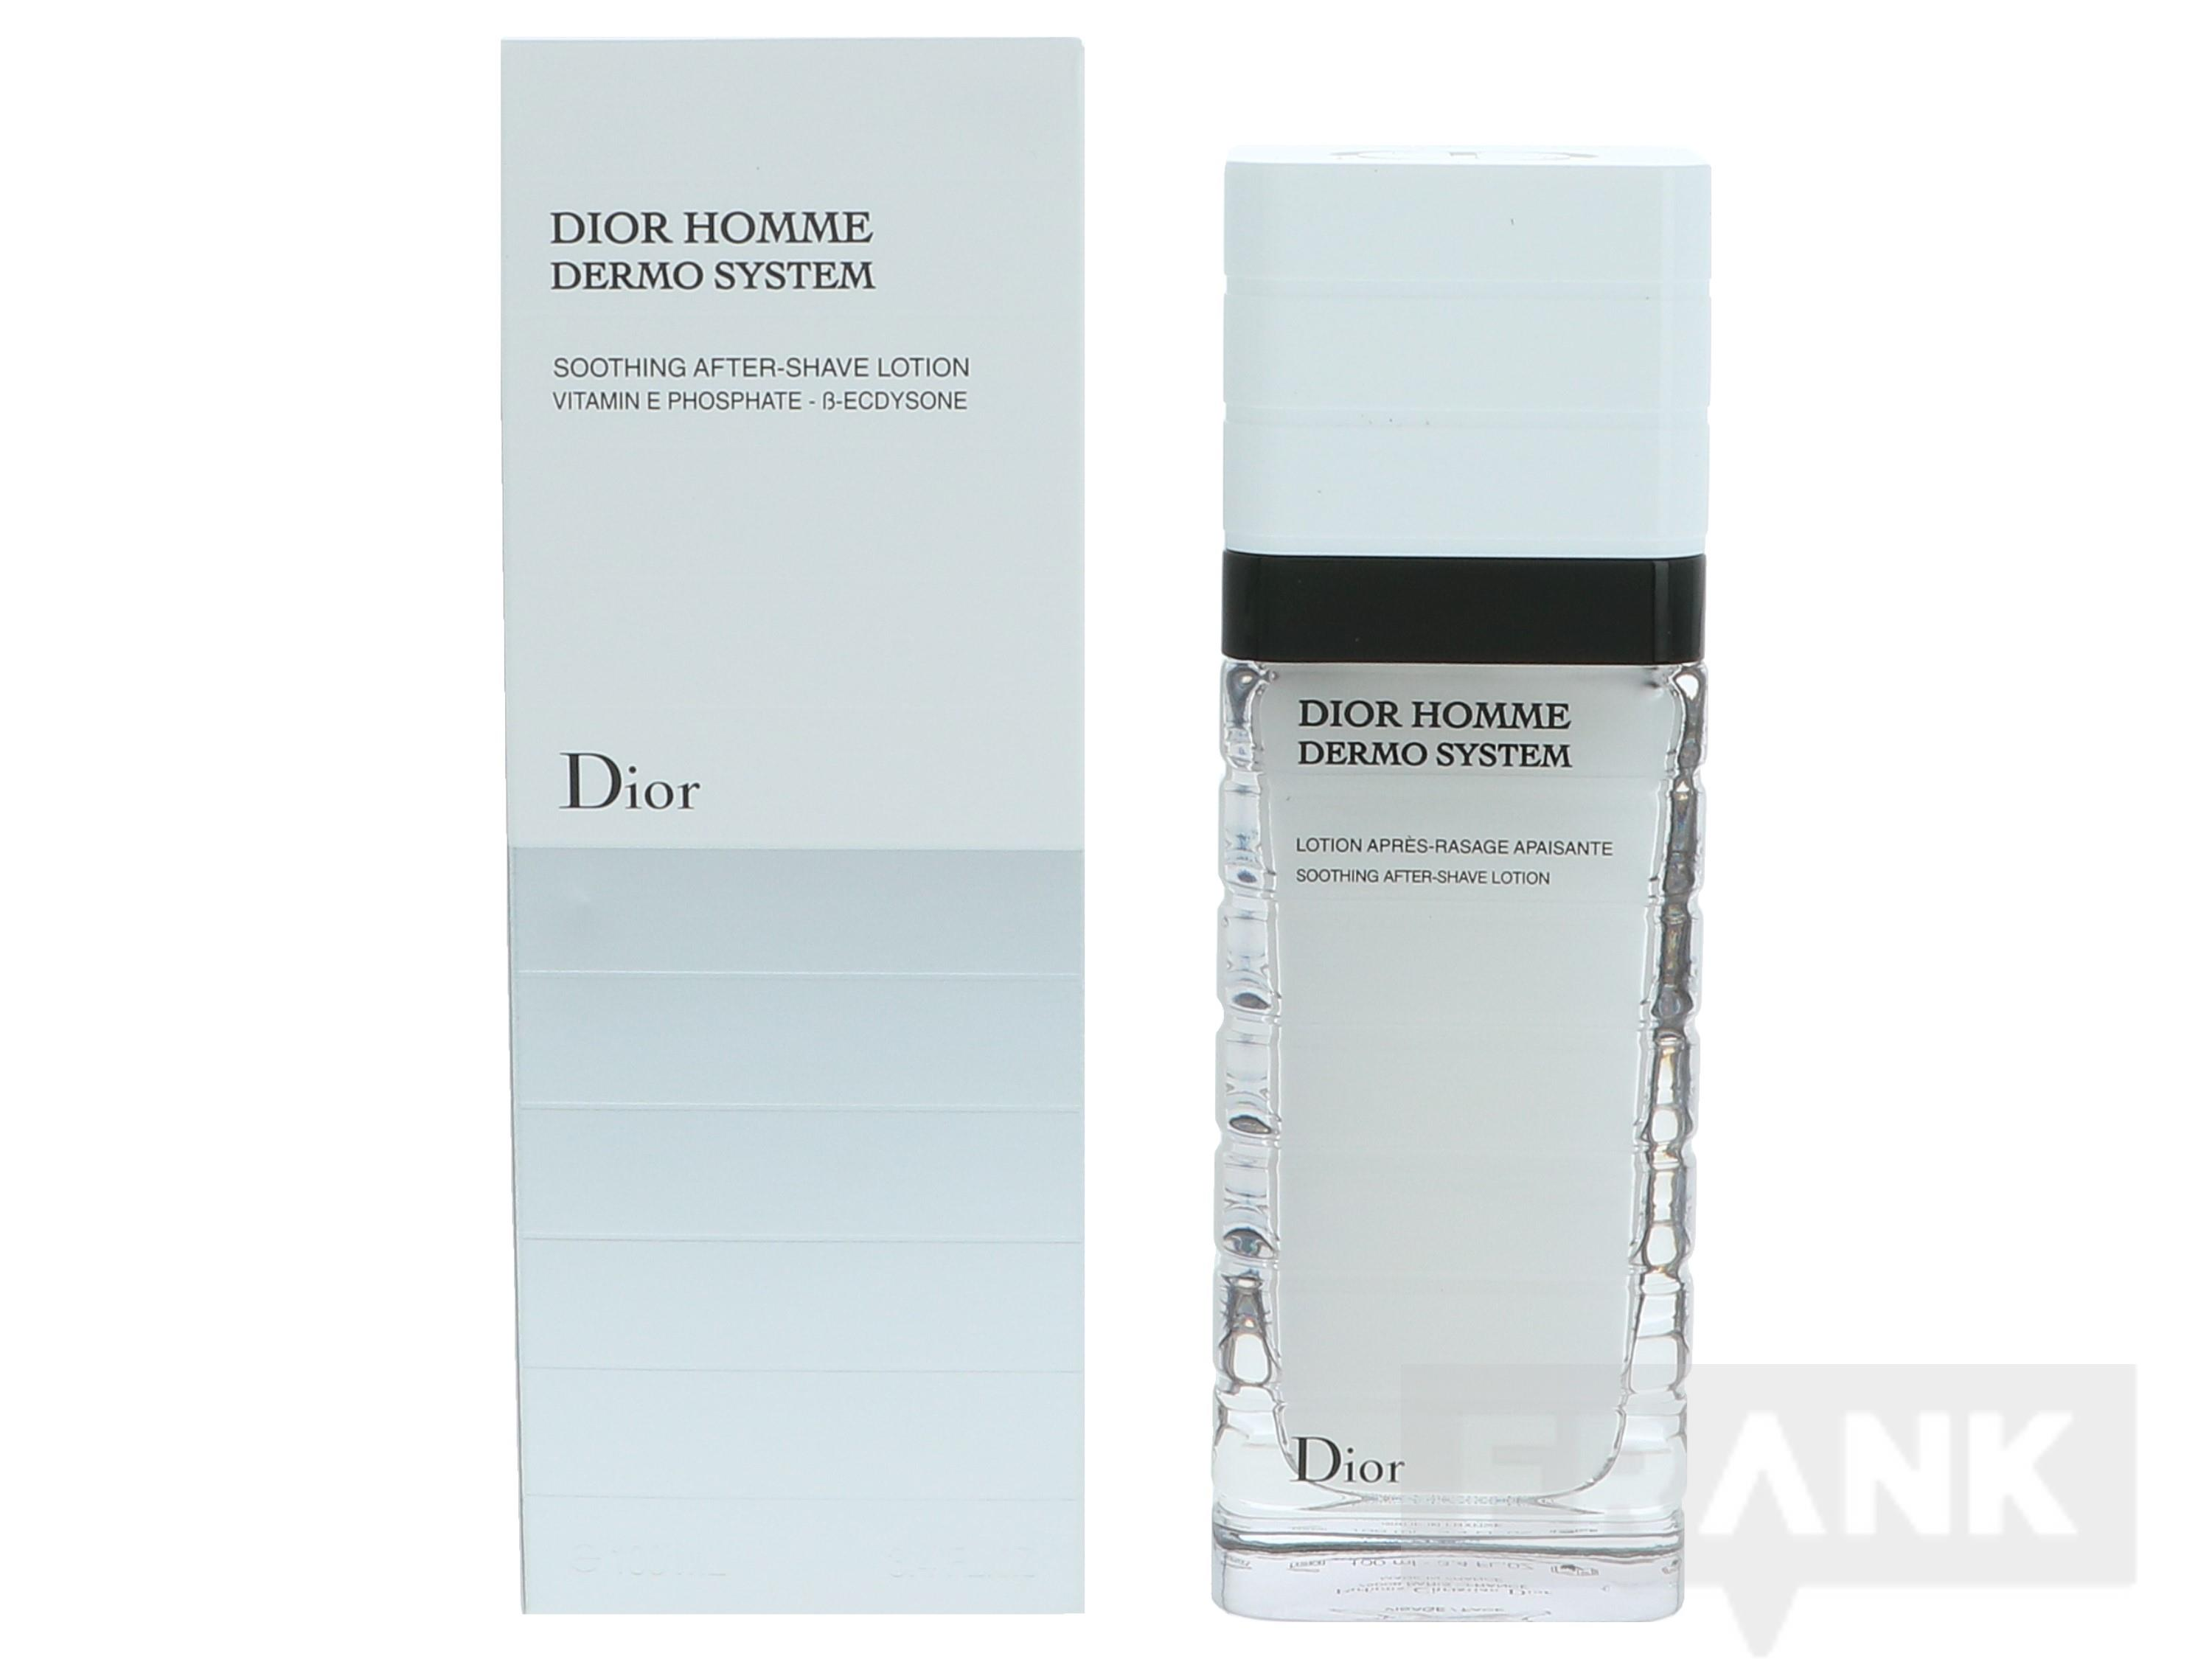 C.Dior Homme Dermo Soothing After Shave Lotion 100ml